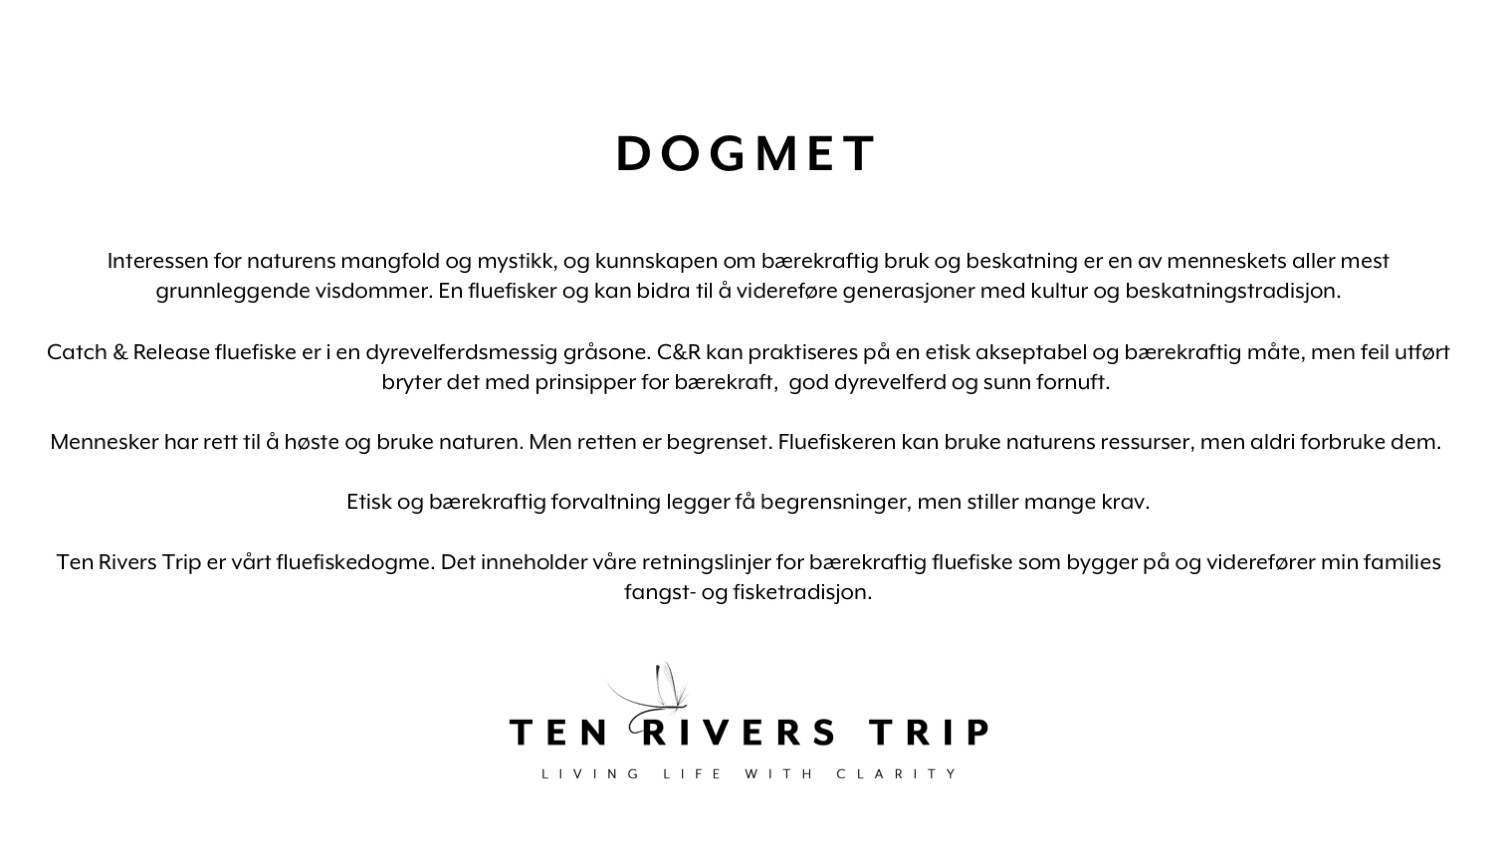 Ten Rivers Trip Dogmet